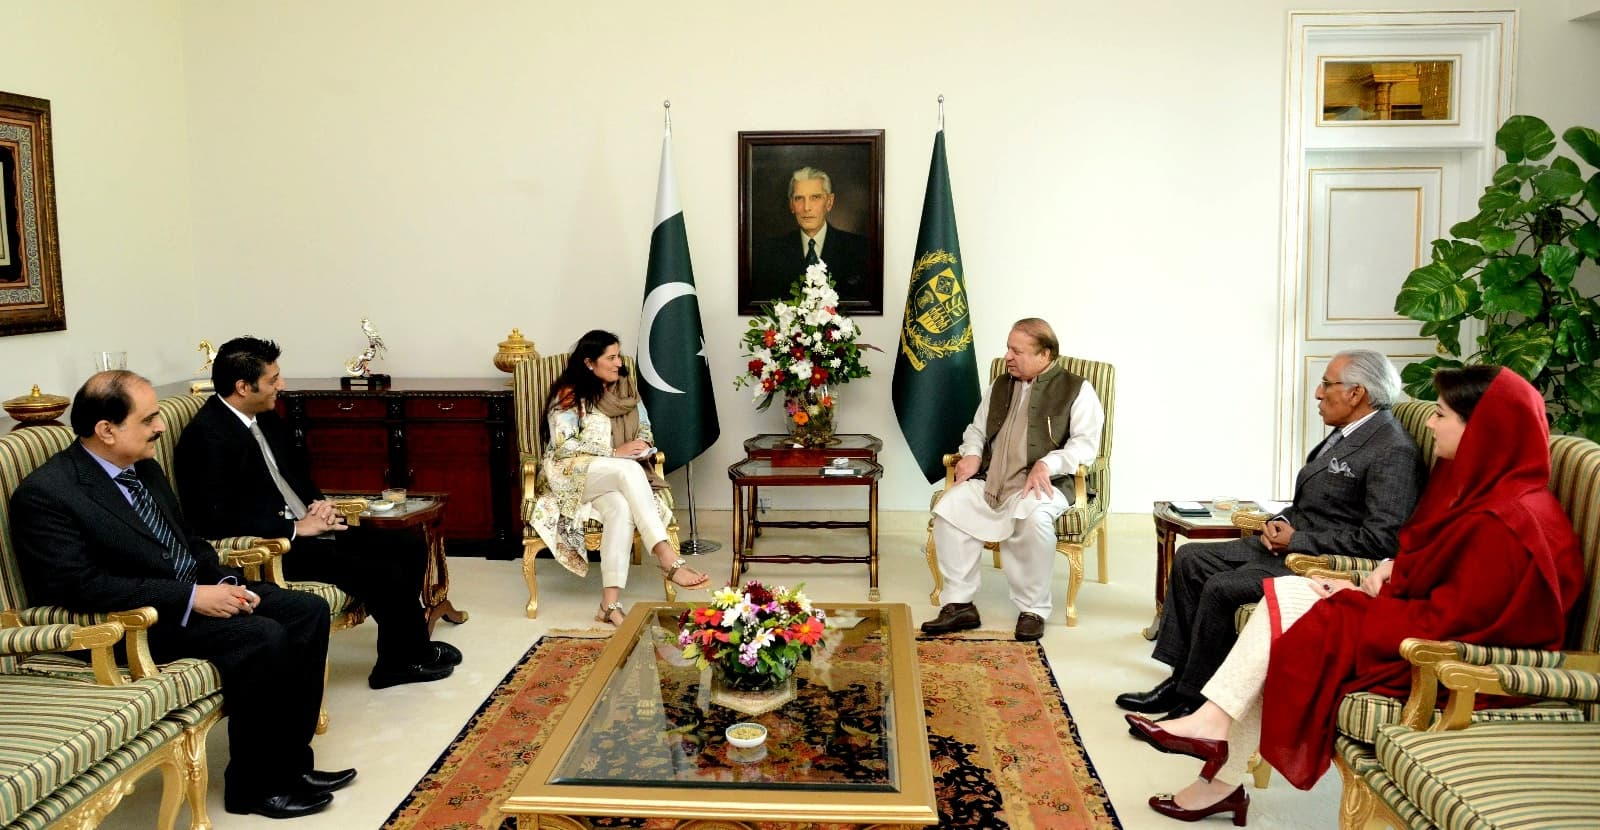 Sharmeen met with the Pakistani Prime Minister Mian Nawaz Sharif to discuss the eradication of honour killings in Pakistan - Publicity photo